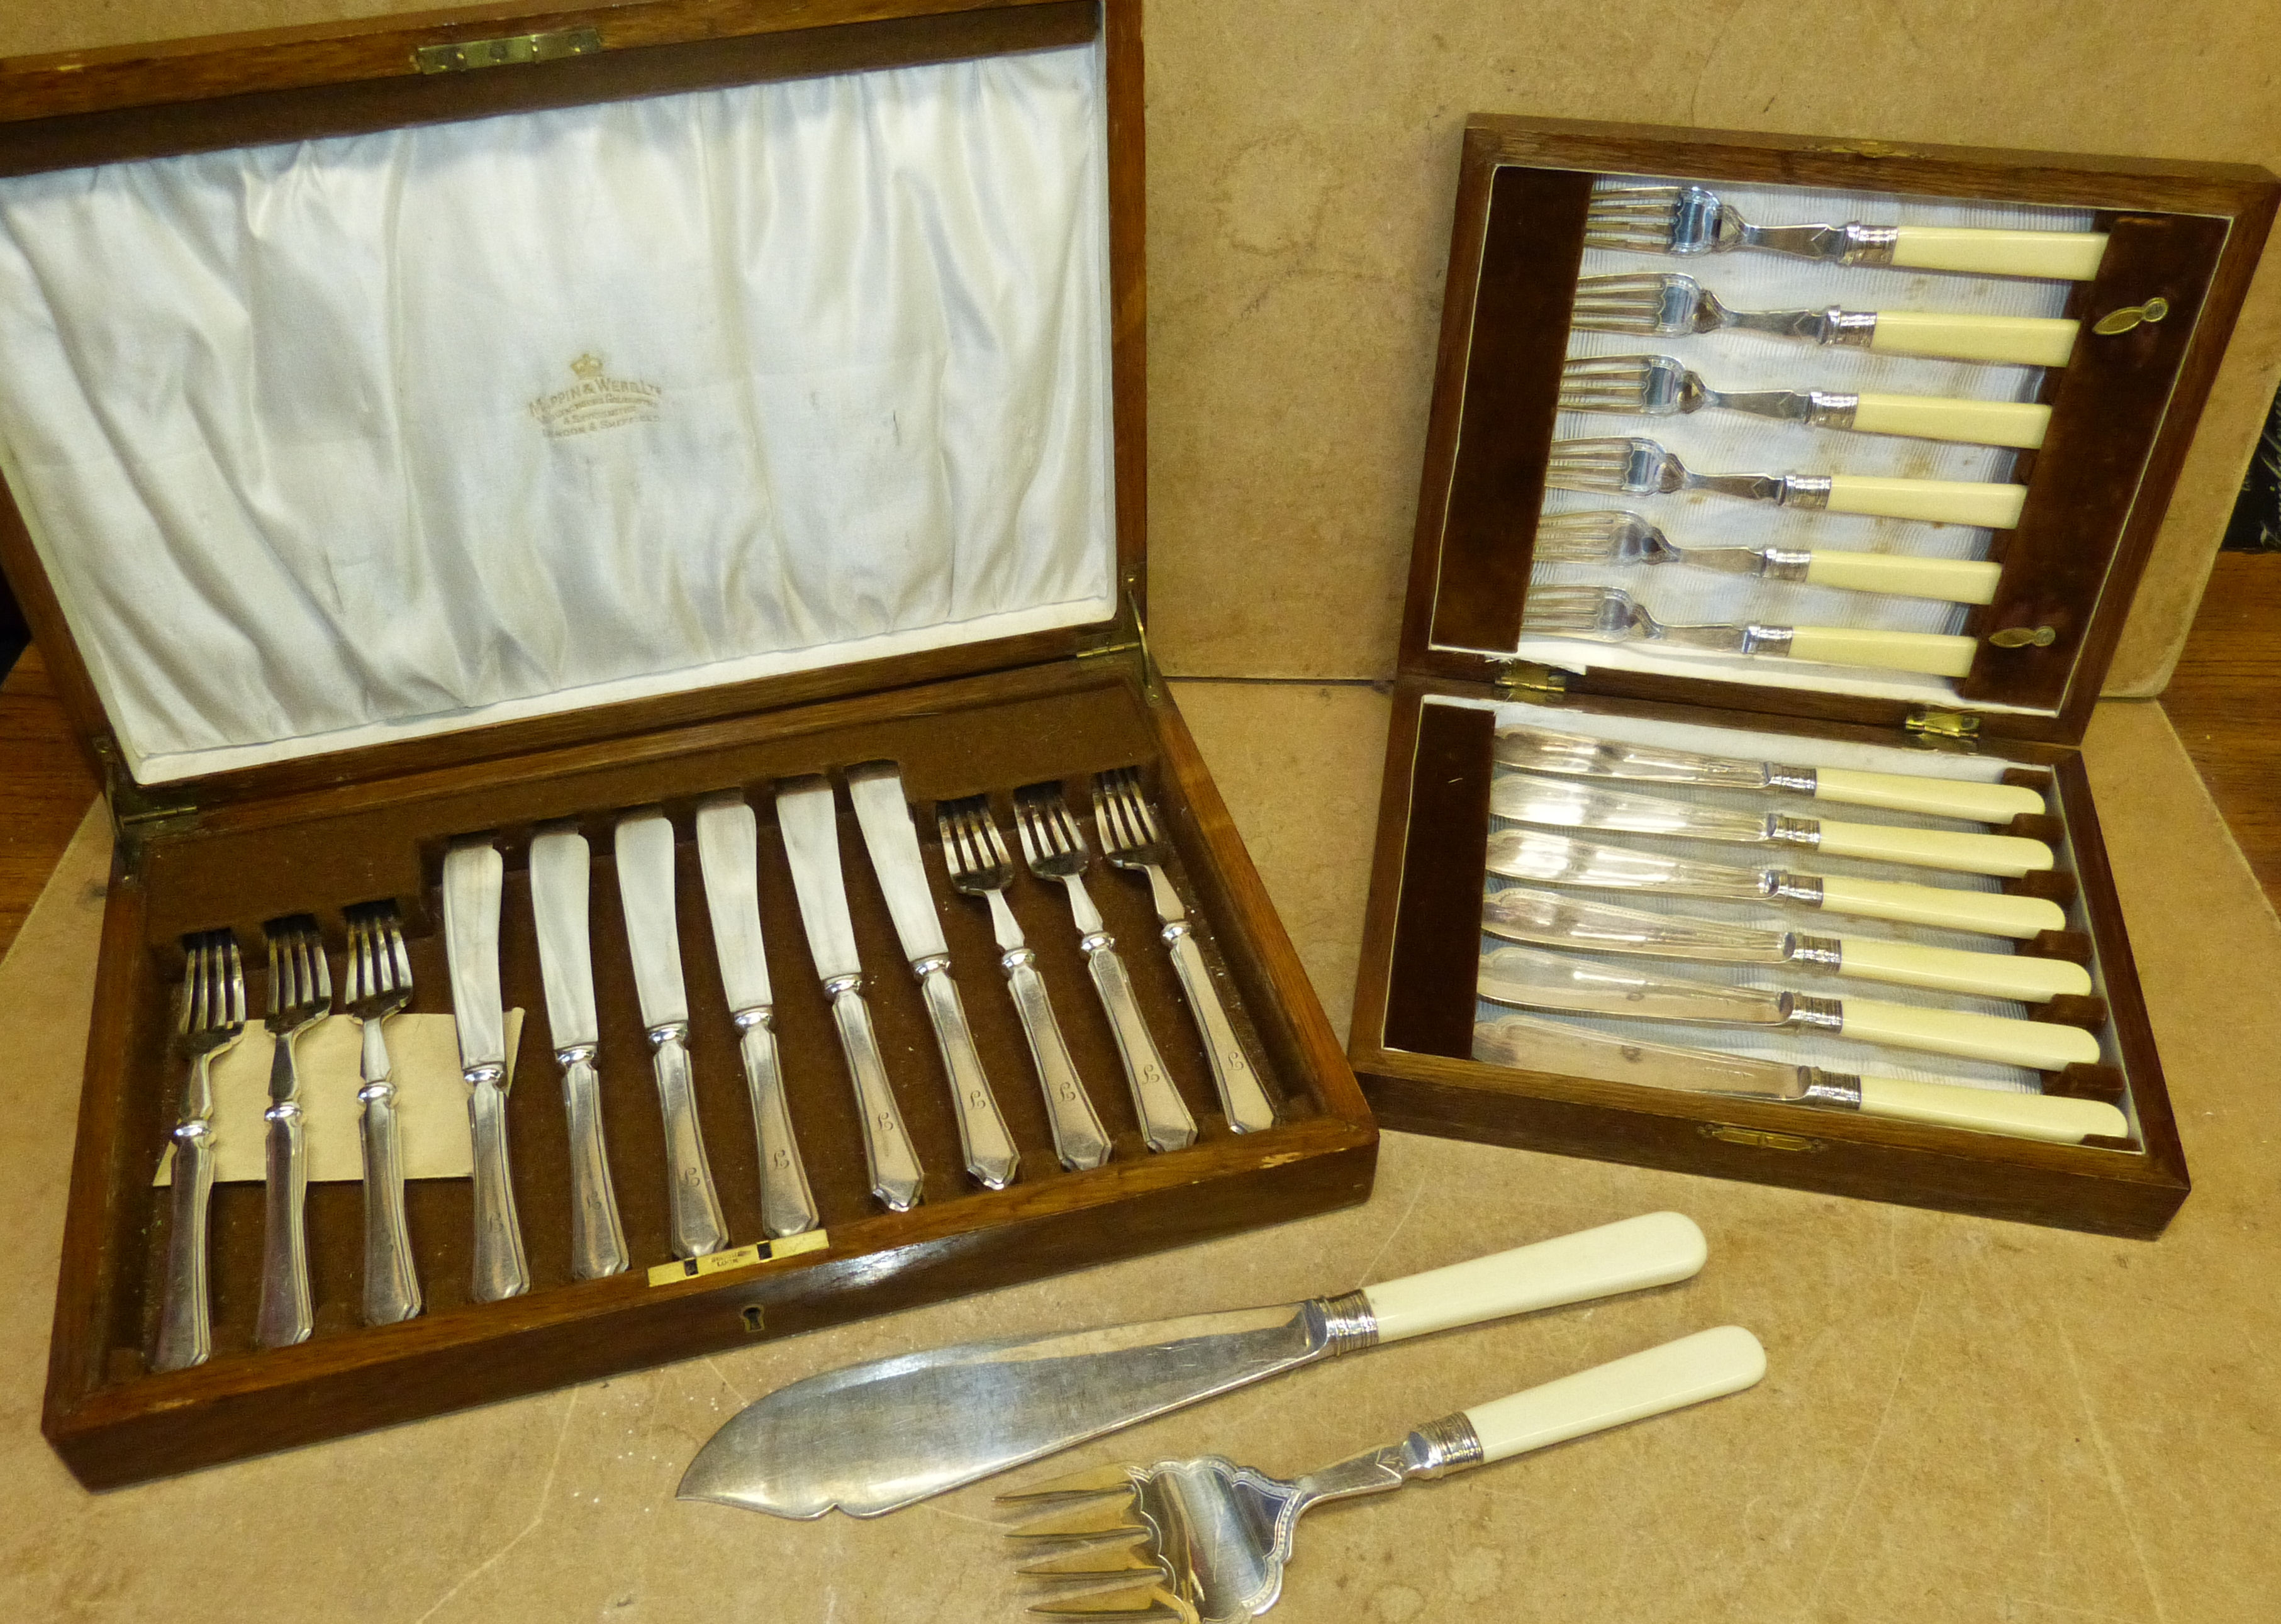 A Set of 6 Mappin & Webb Silver Plated Fish Knives and Forks in fitted oak case